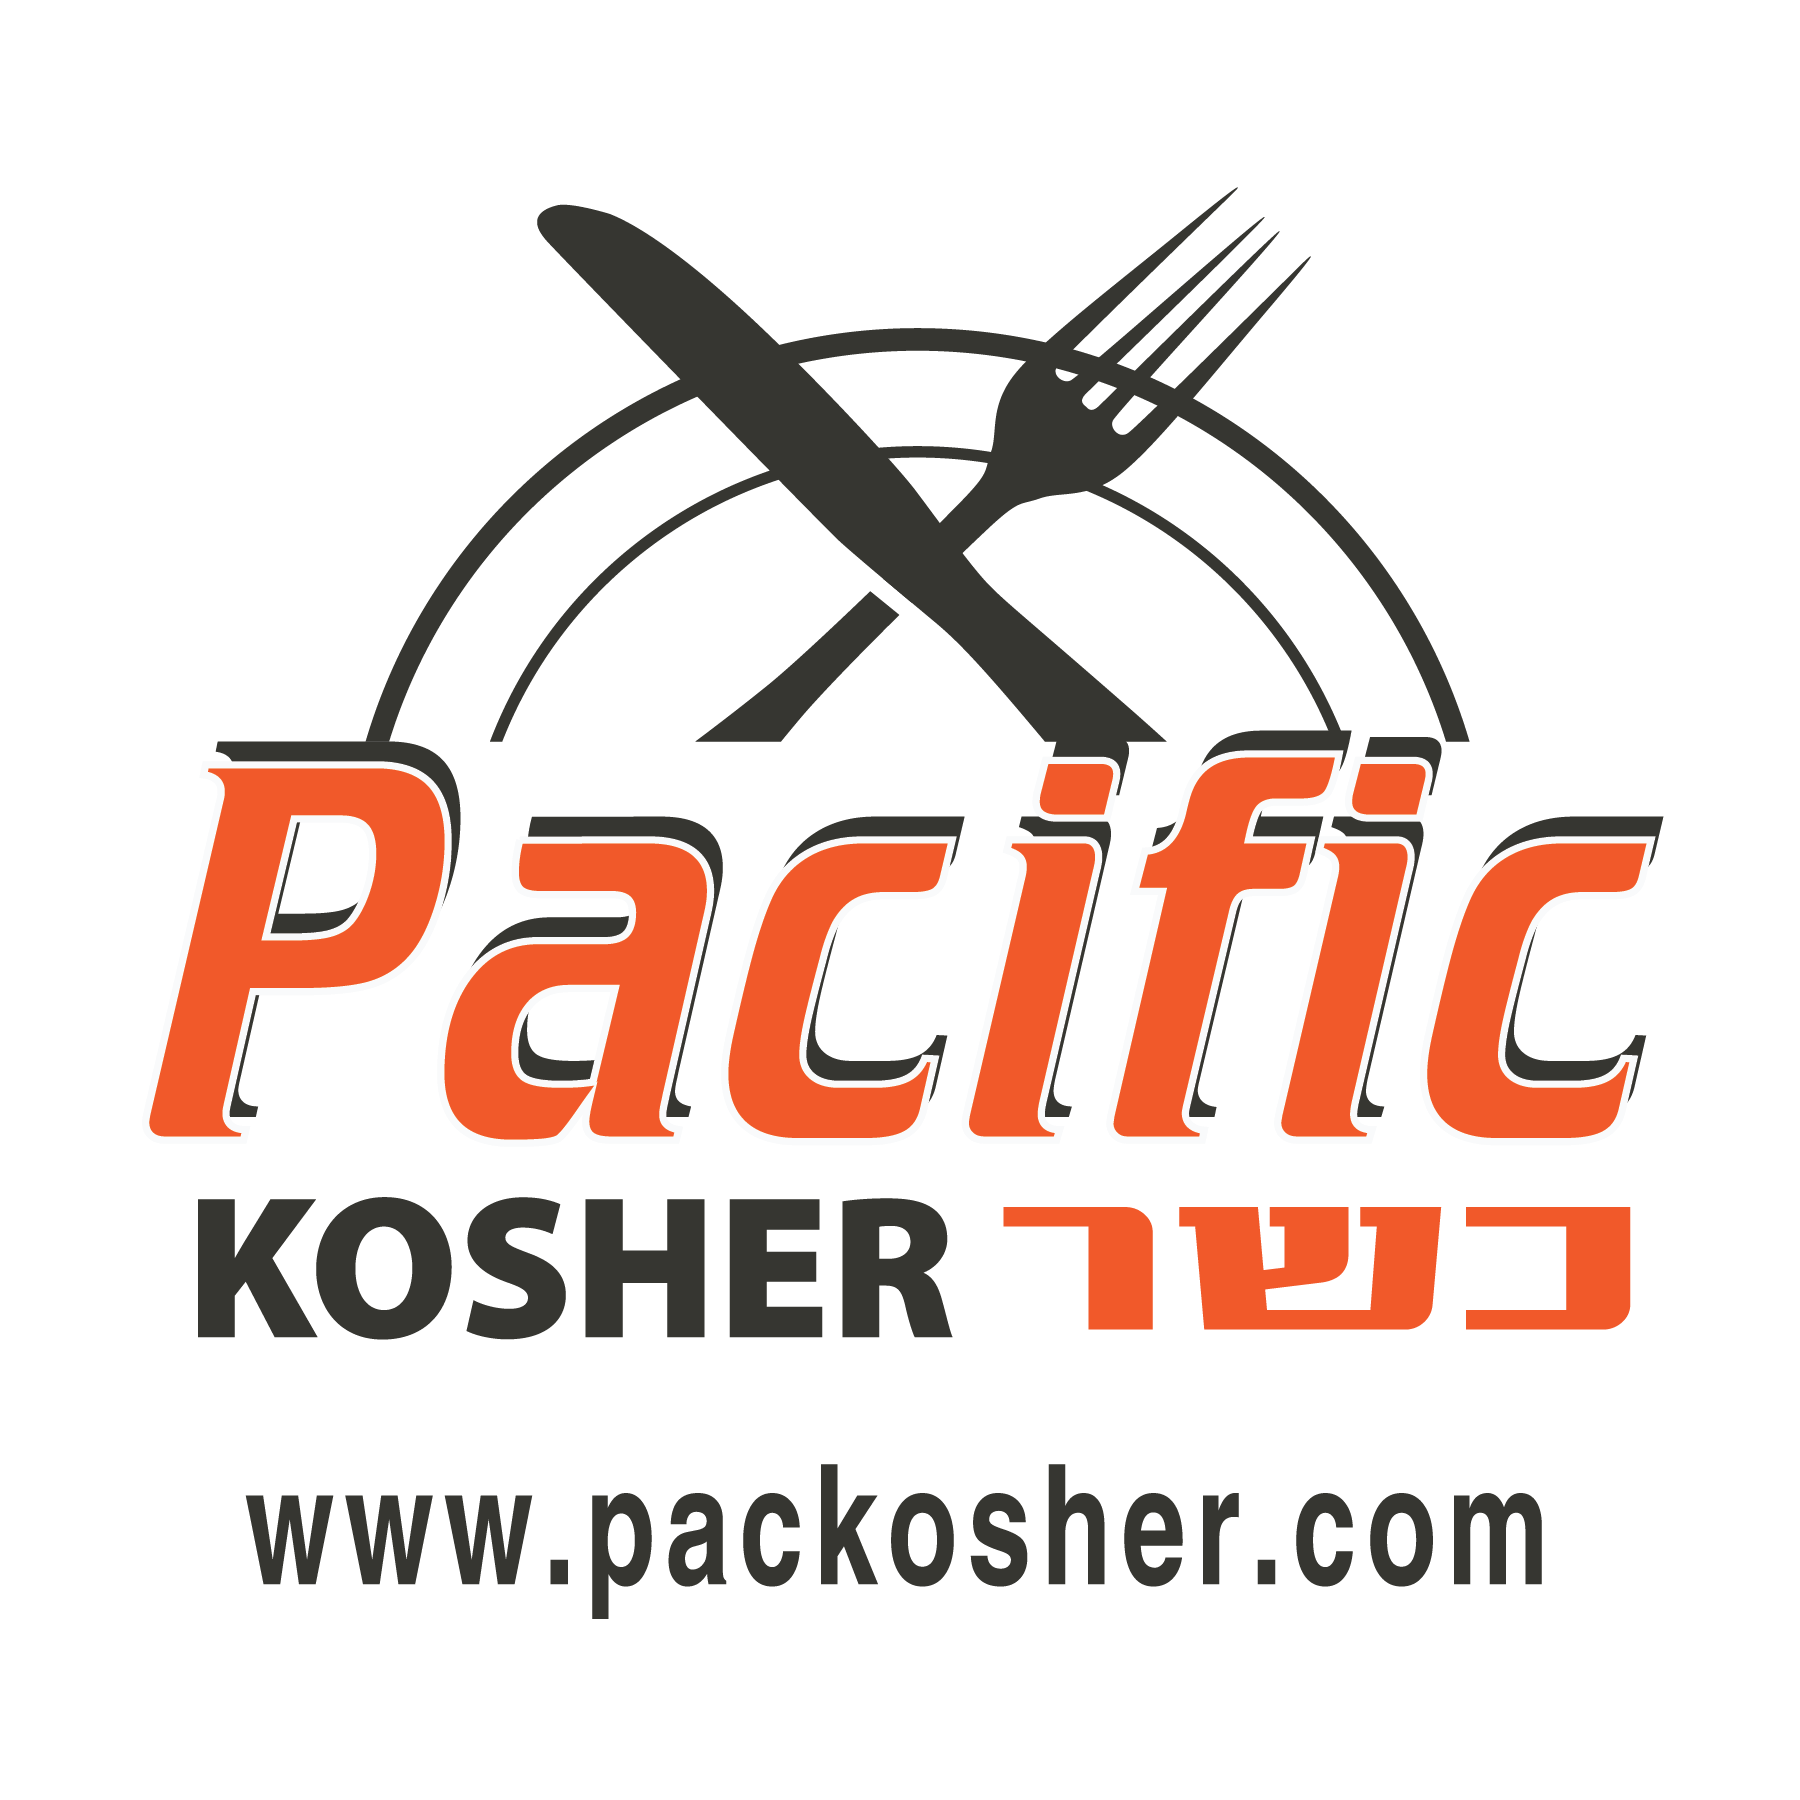 PACIFIC KOSHER RESTAURANT